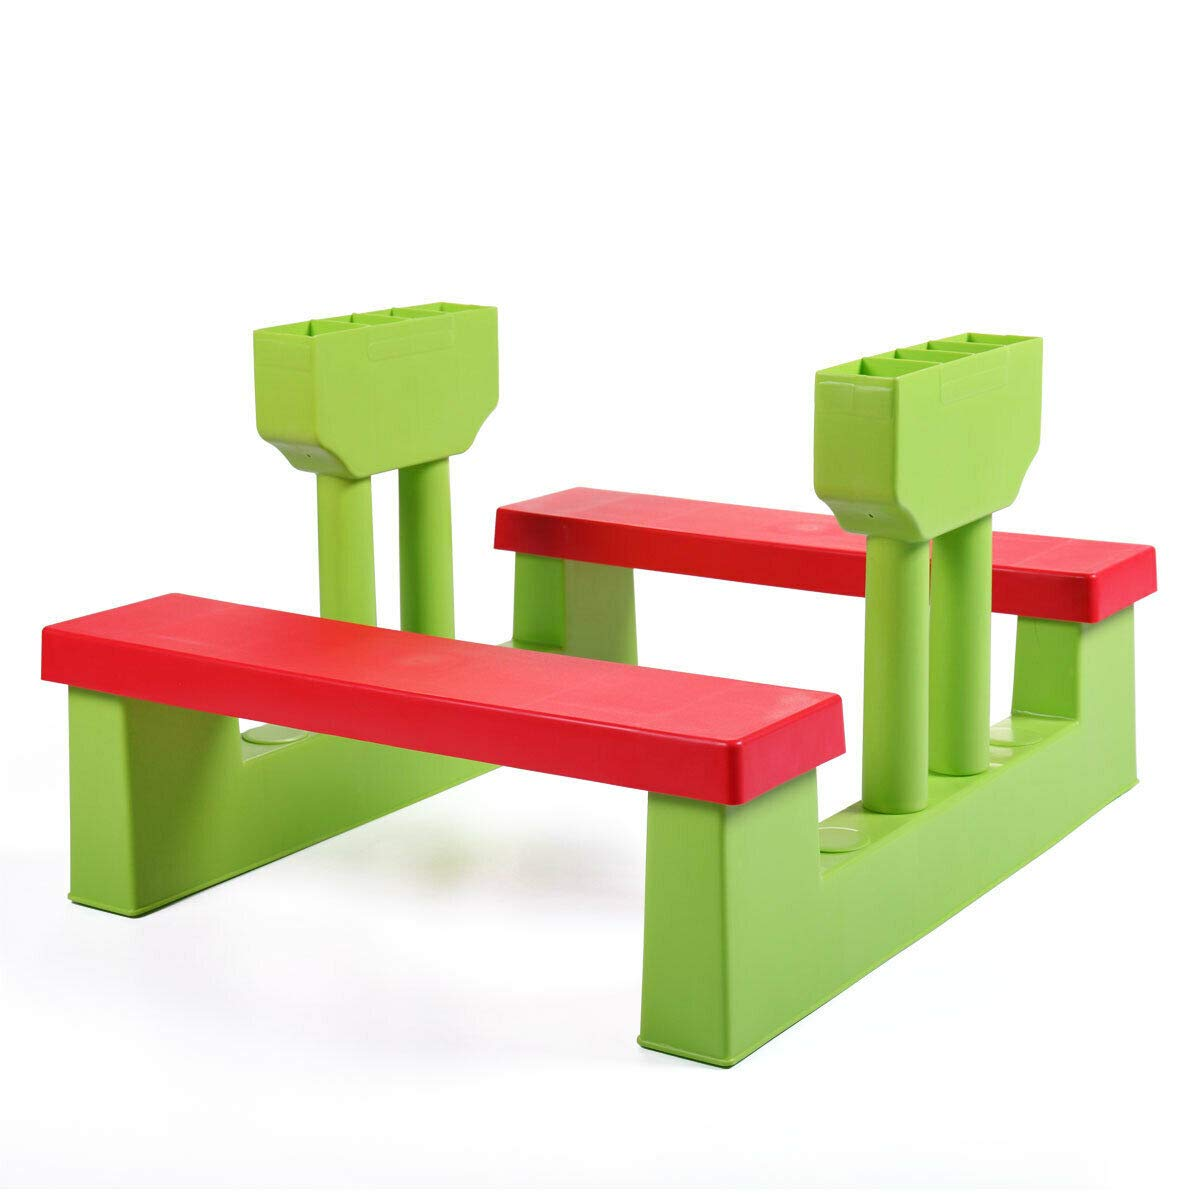 ARABYAN BROTHERS 4 Seat Kids Picnic Table w/Umbrella Garden Yard Folding Children Bench Outdoor, Outdoor Play Table Patio Furniture by ARABYAN BROTHERS